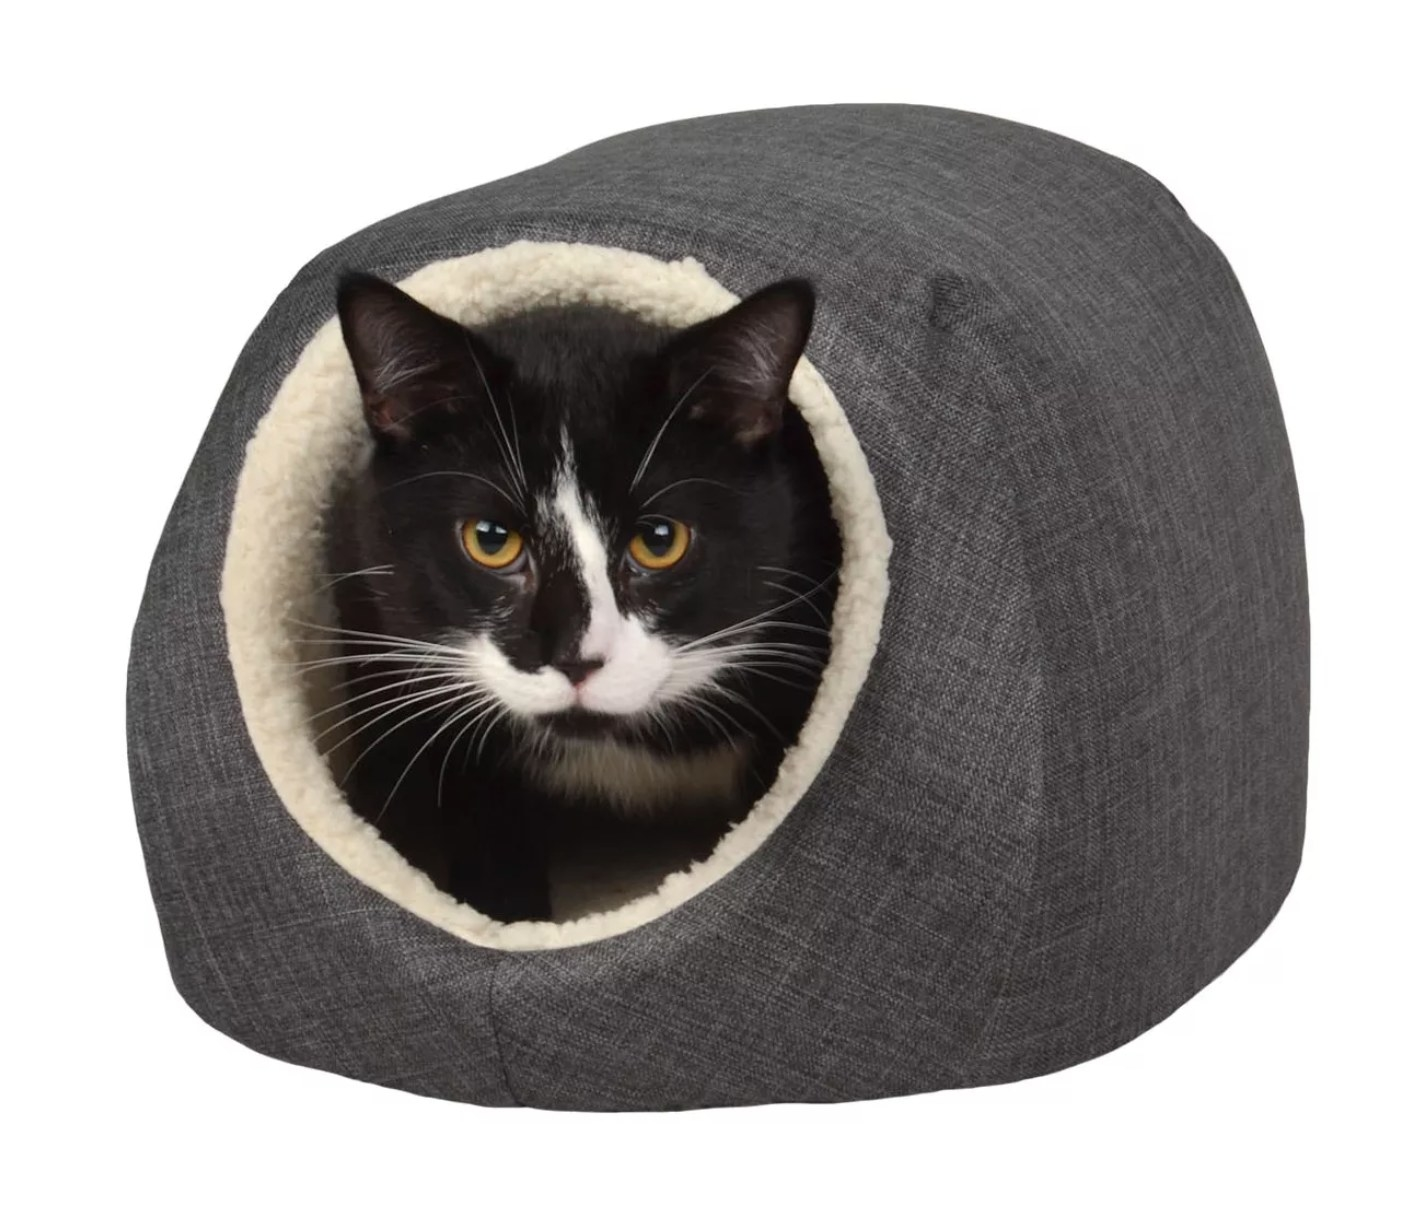 The cozy gray and cream-colored pet cave